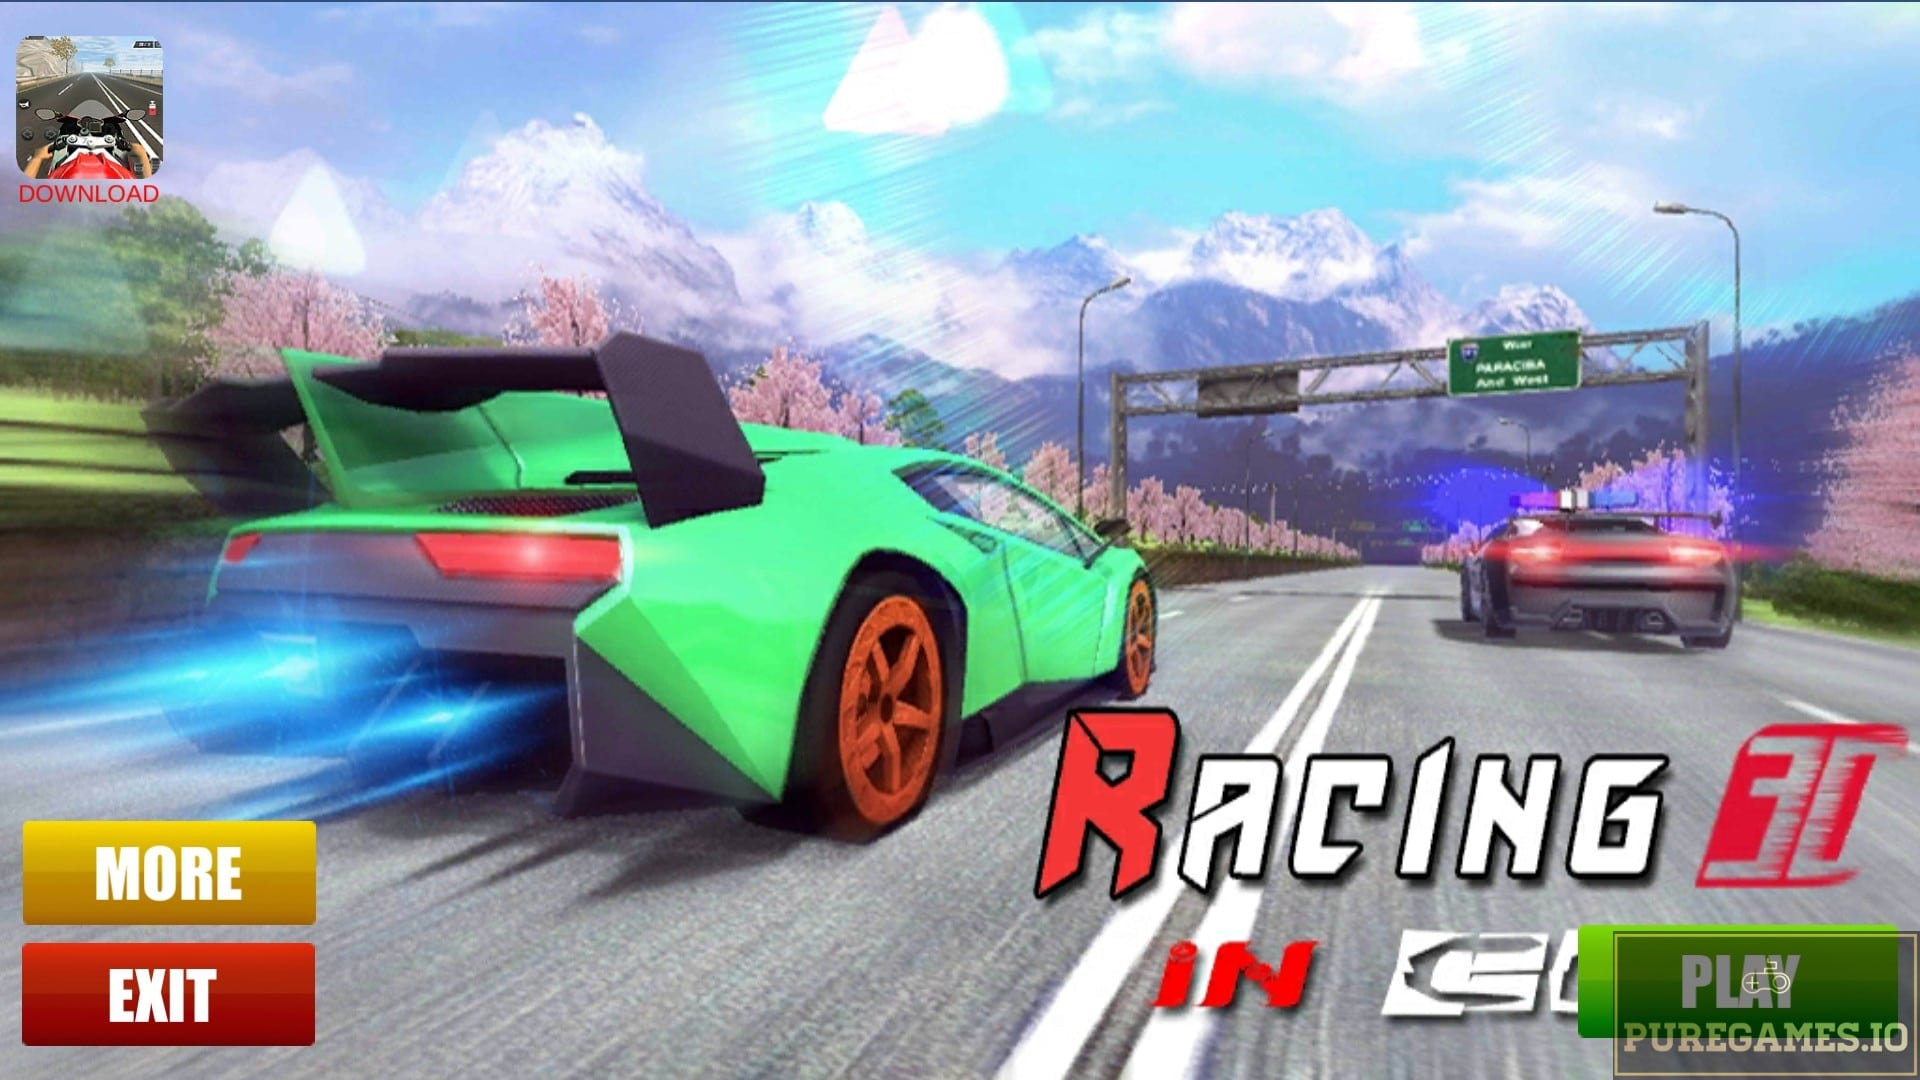 Download Racing In Car 3D APK - For Android 2